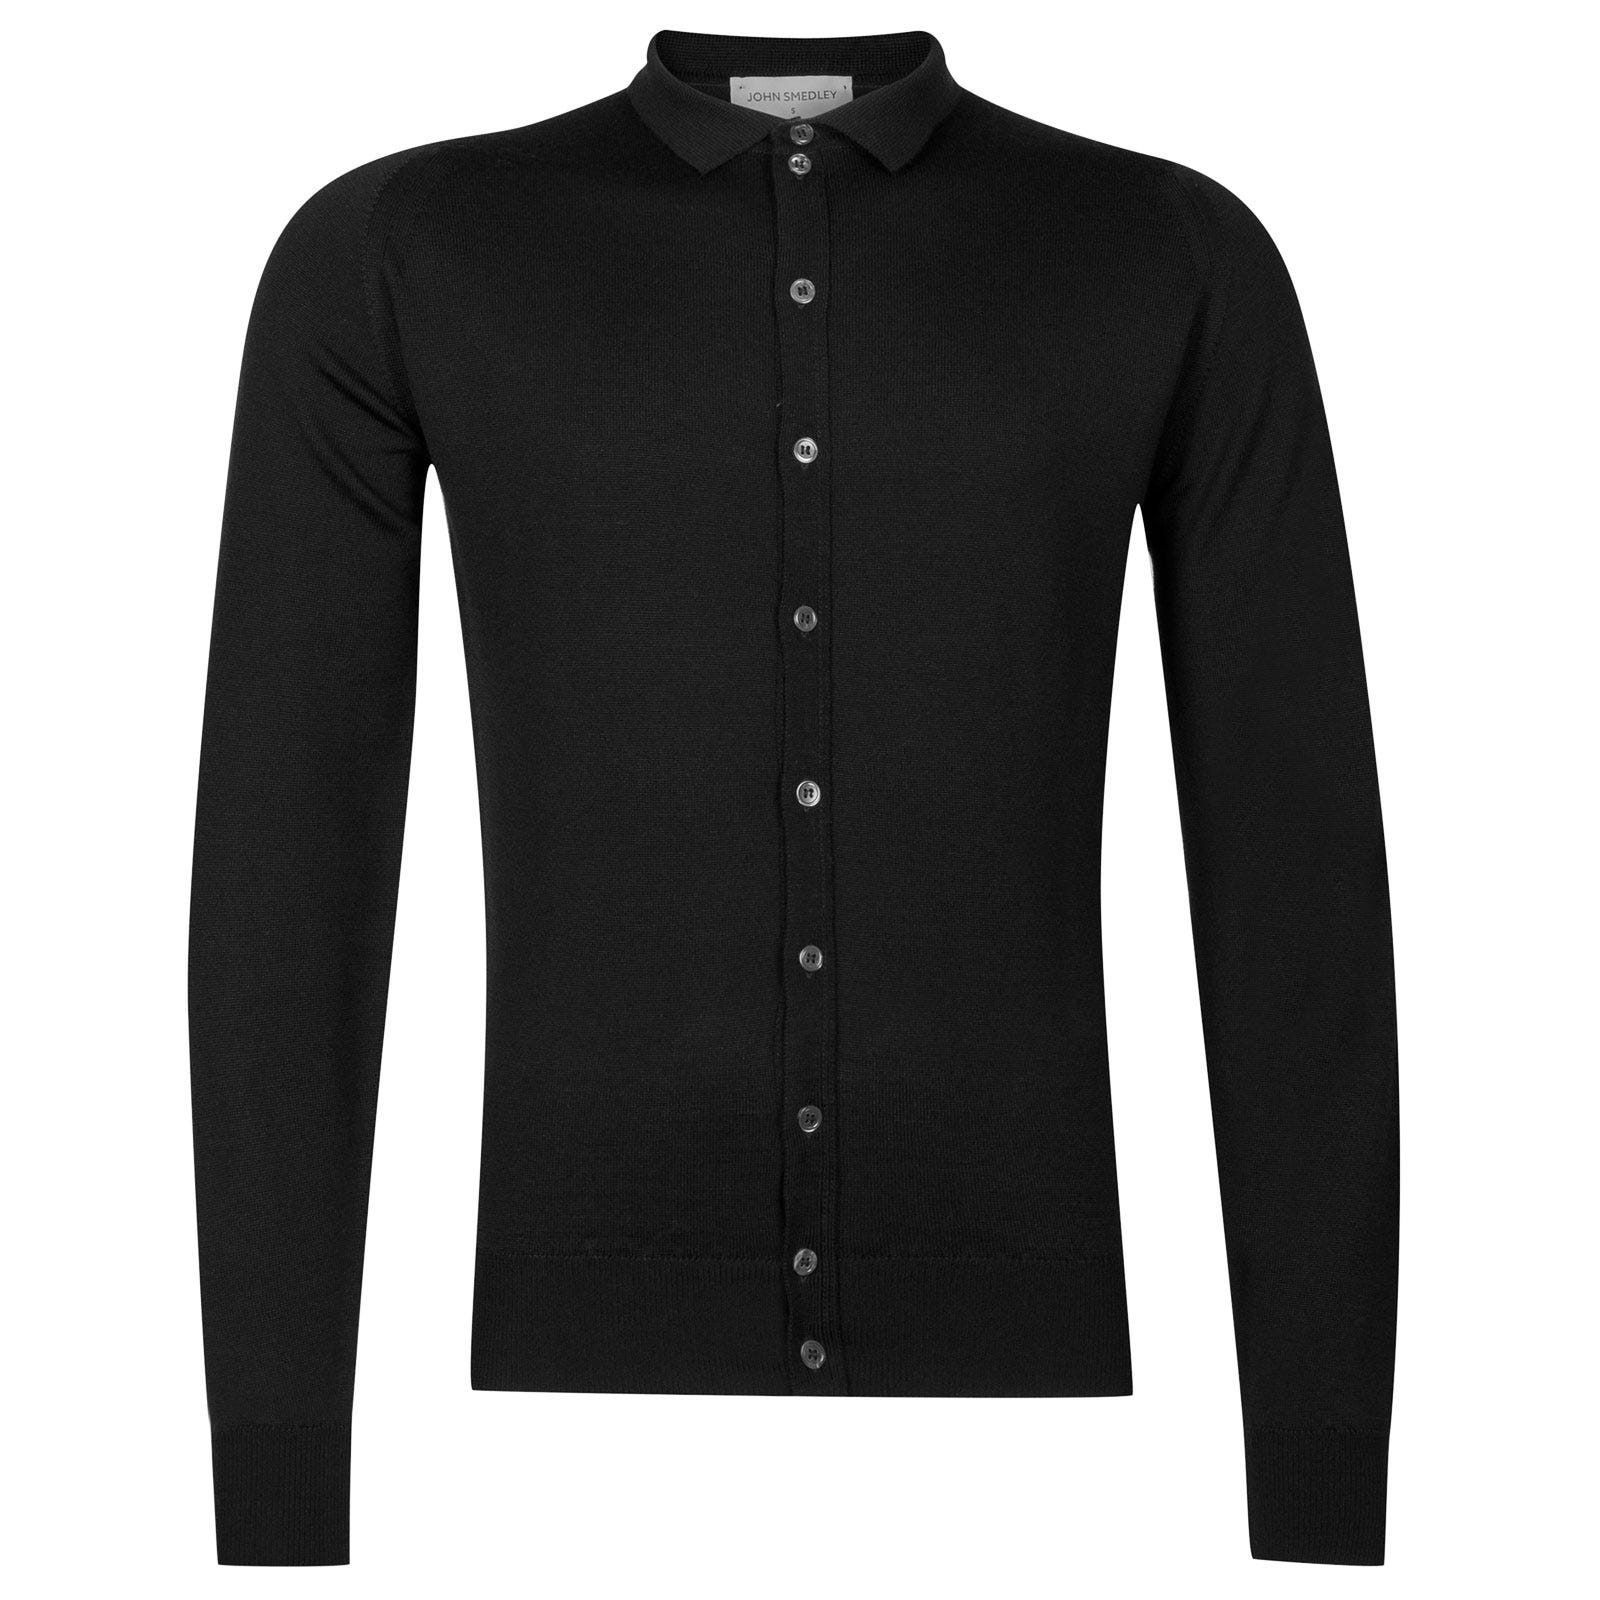 John Smedley parwish Merino Wool Shirt in Black-XL